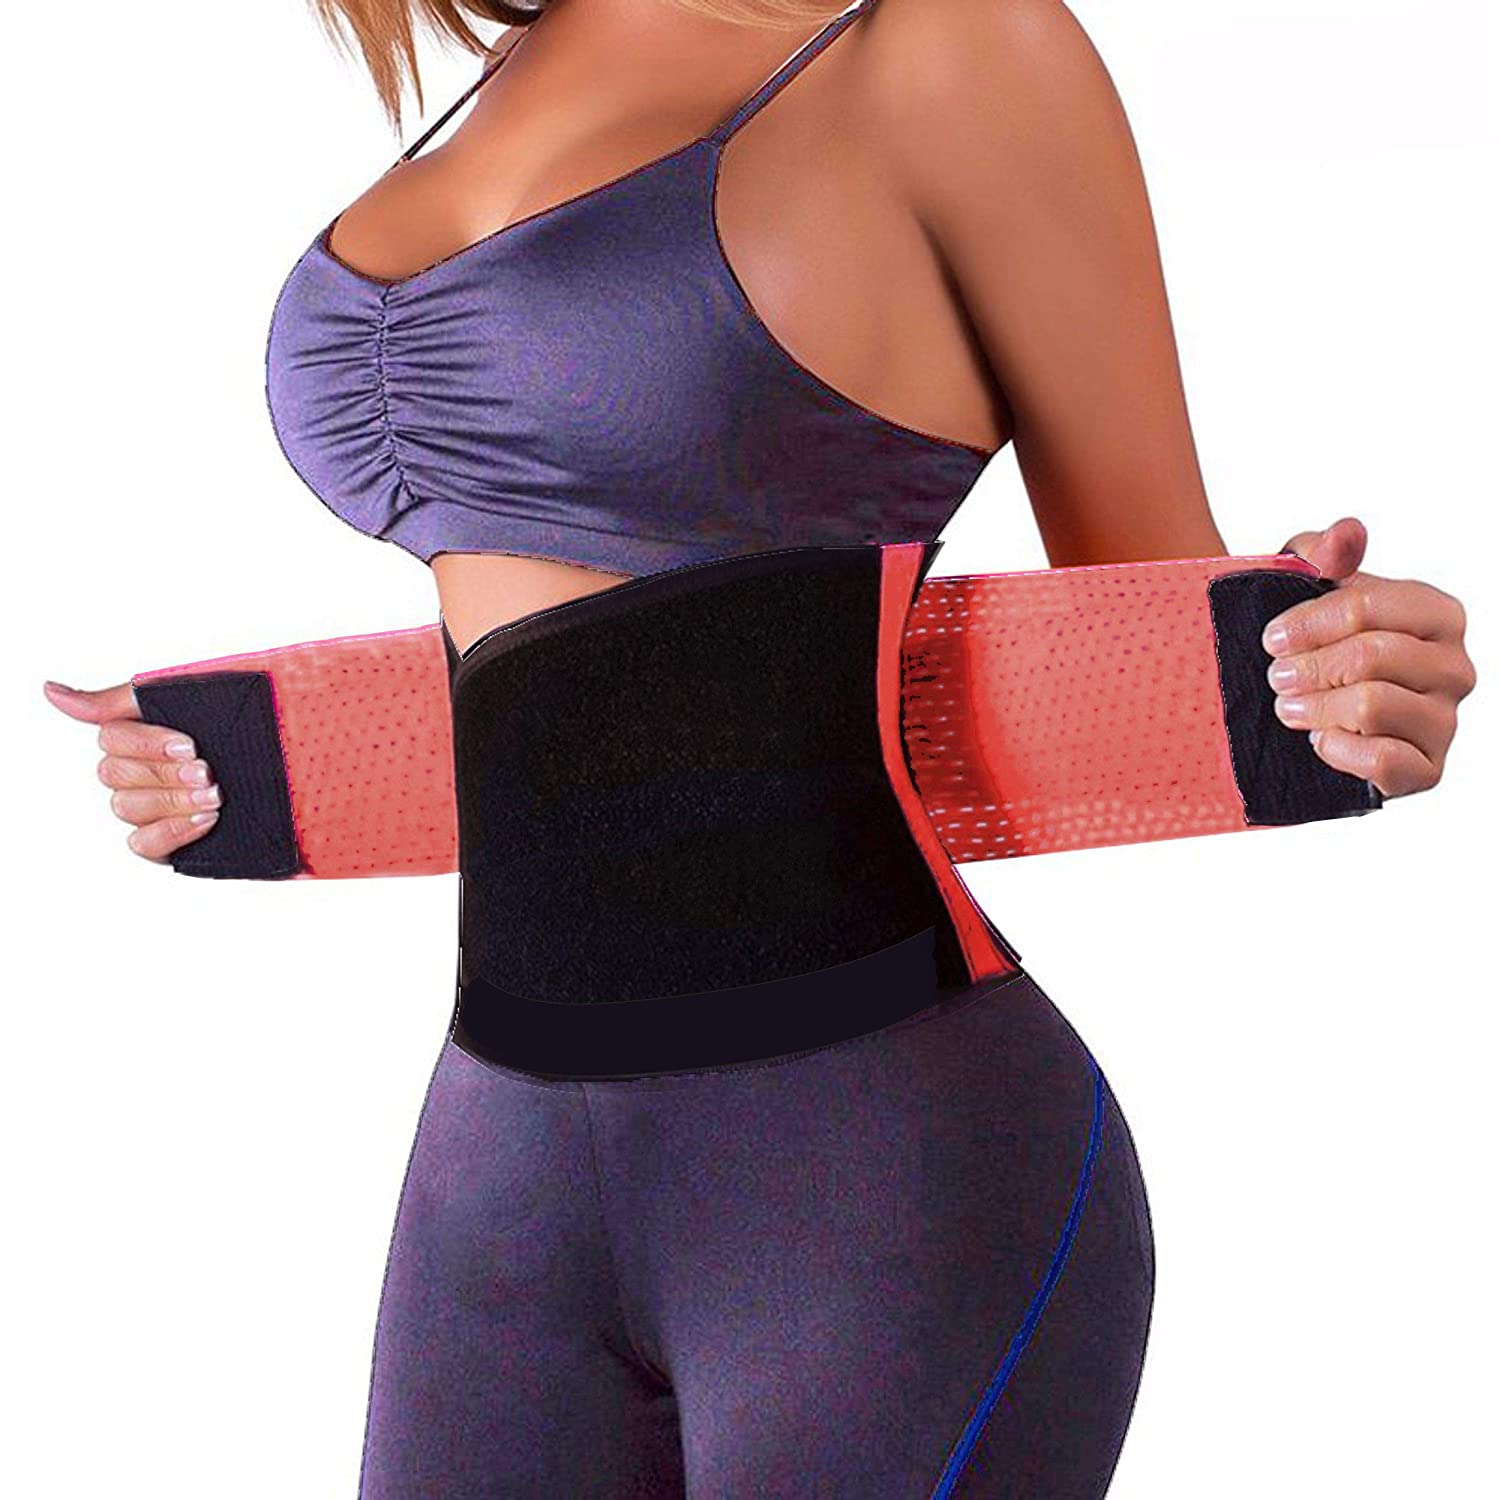 SchwabMarken Sport Power Belt Waist trainer, 4 fitness belt E-Flyup